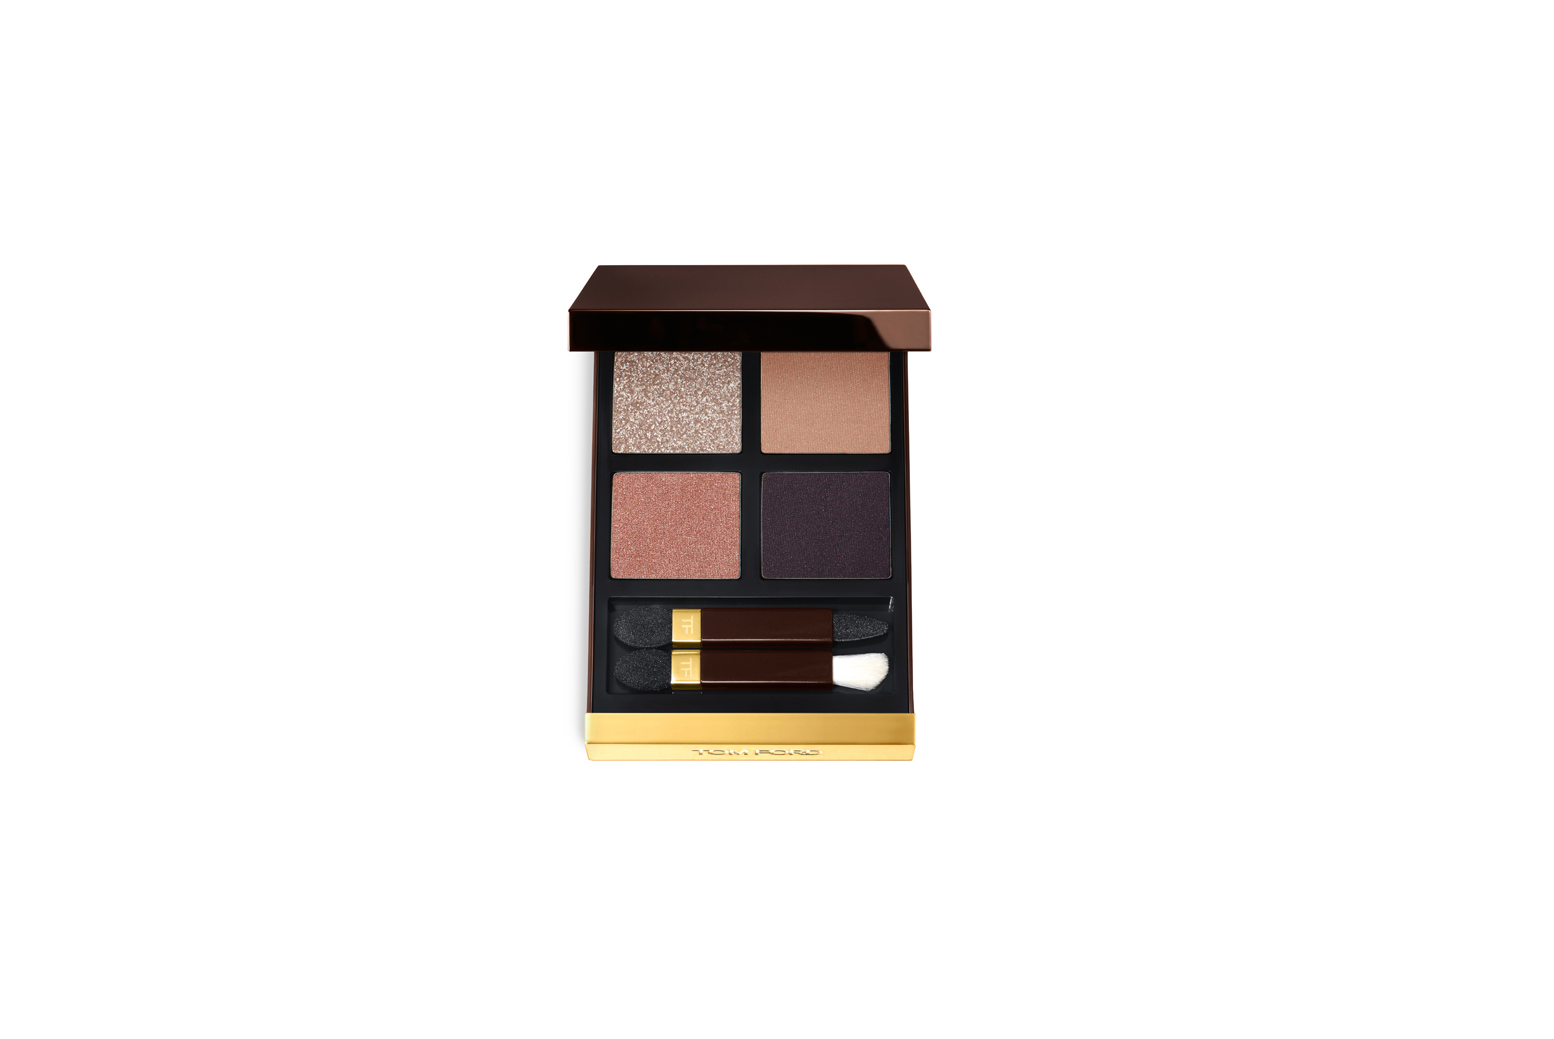 Tom Ford Eye Color Quad in Disco Dust